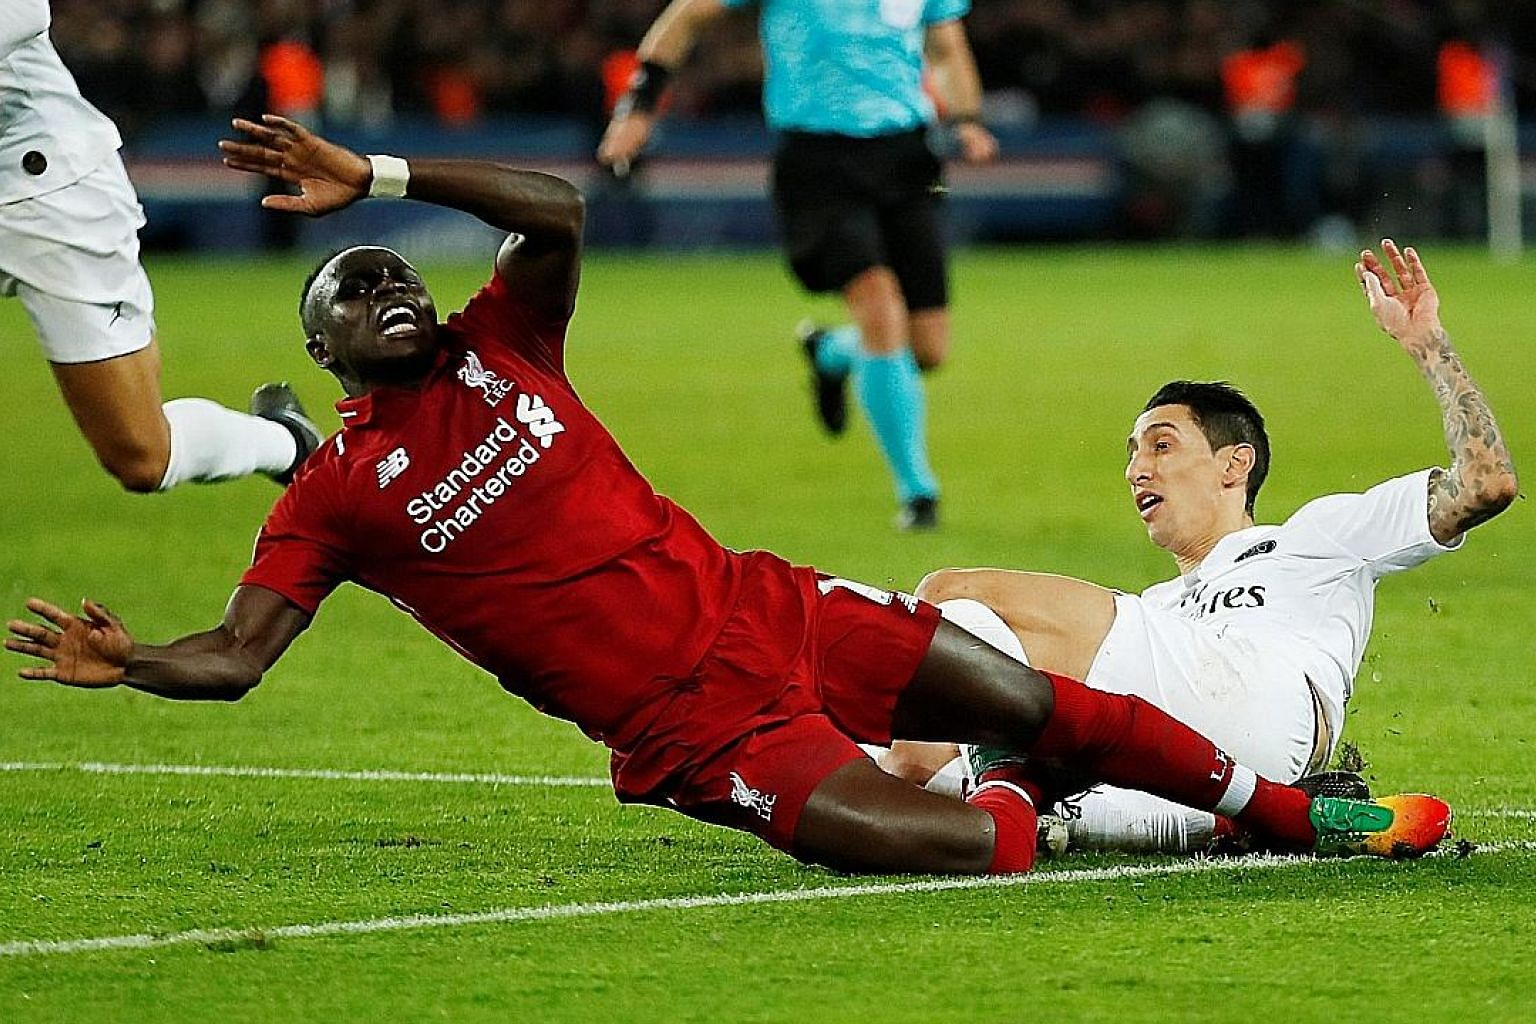 Paris Saint-Germain's Angel di Maria (in white) fouling Liverpool's Sadio Mane during their Champions League clash on Wednesday. James Milner scored the resulting penalty in first-half added time to pull a goal back. It was not enough though, as PSG'